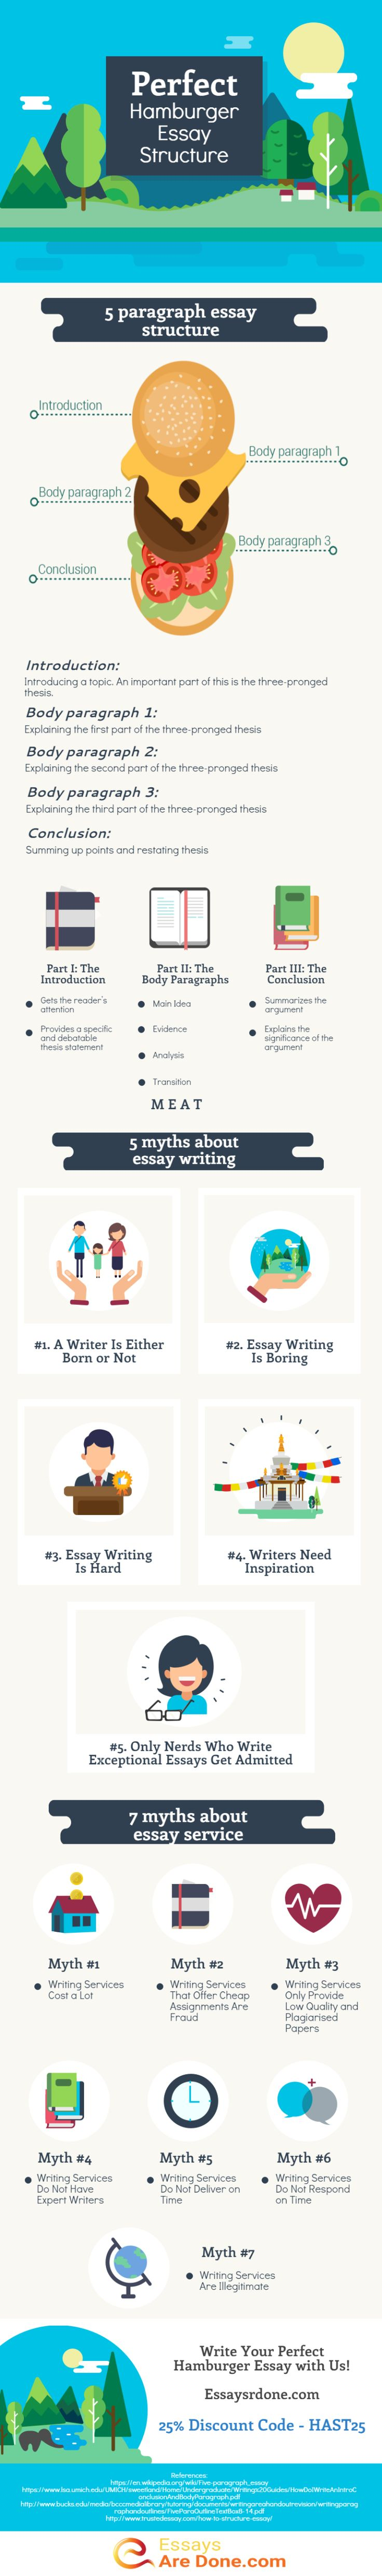 best essay structure ideas essay tips writing essaysrdone com perfect hamburger essay